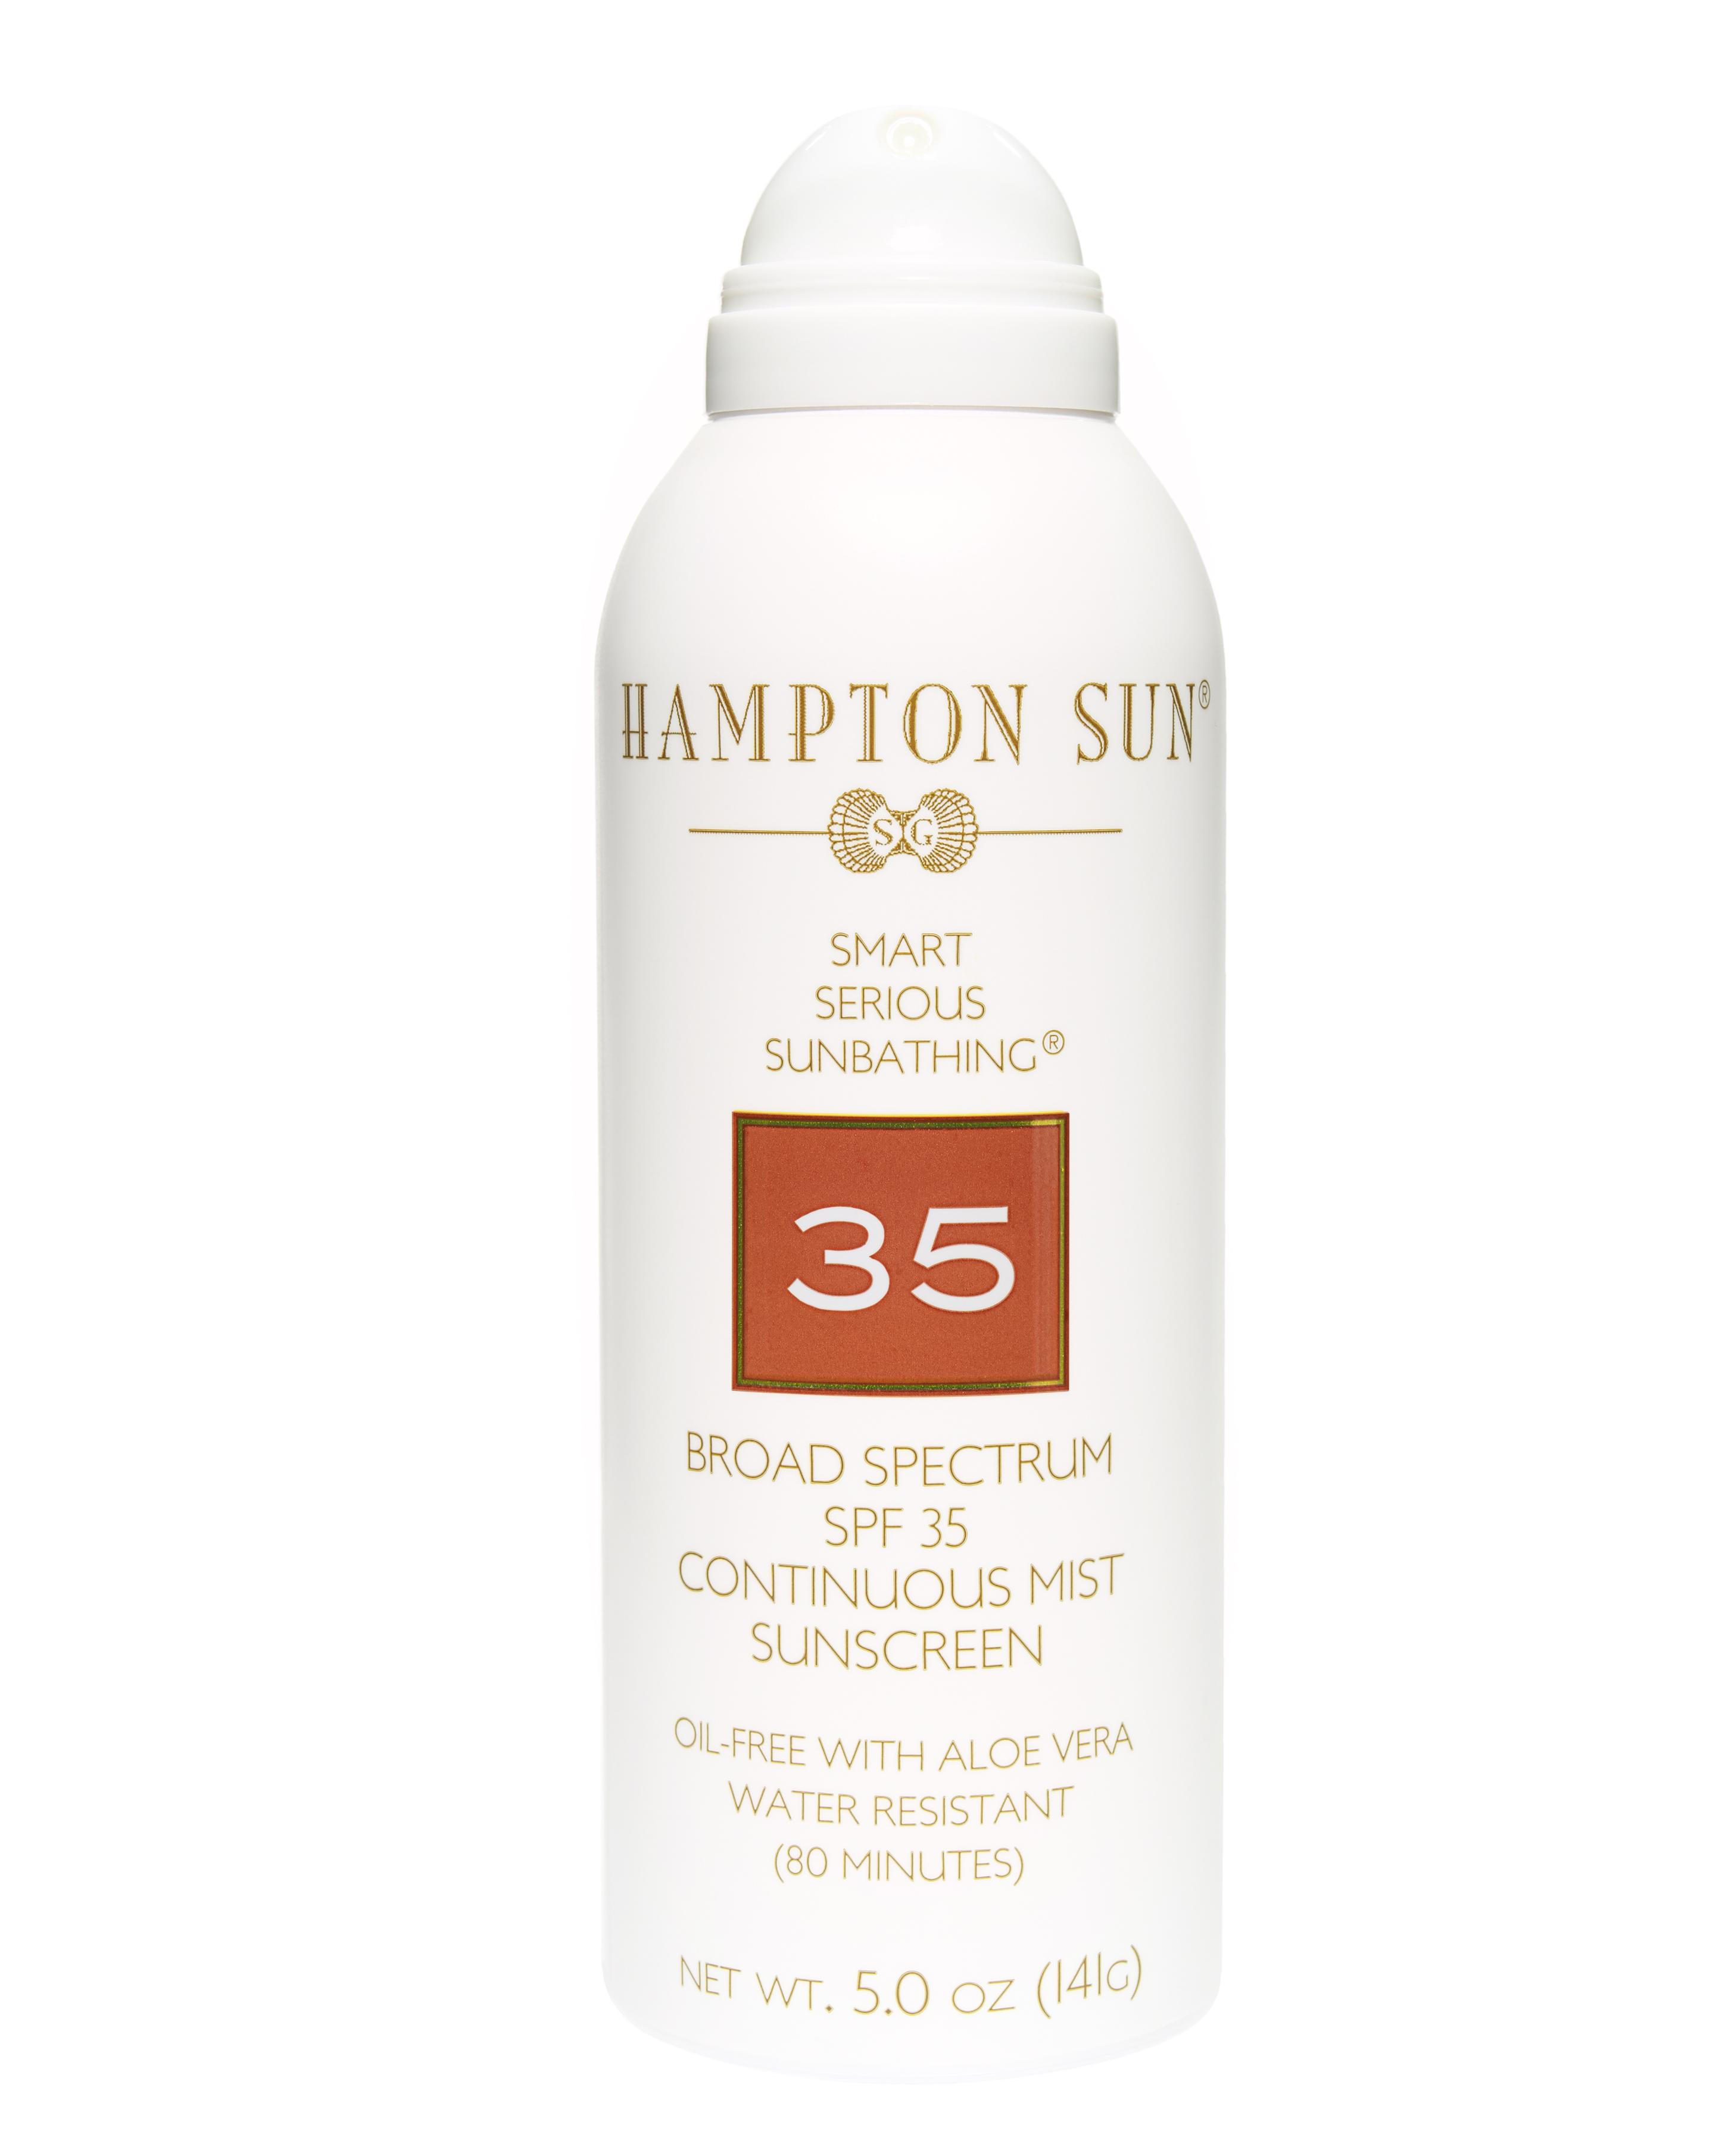 hampton-sun-sunscreen-0414.jpg